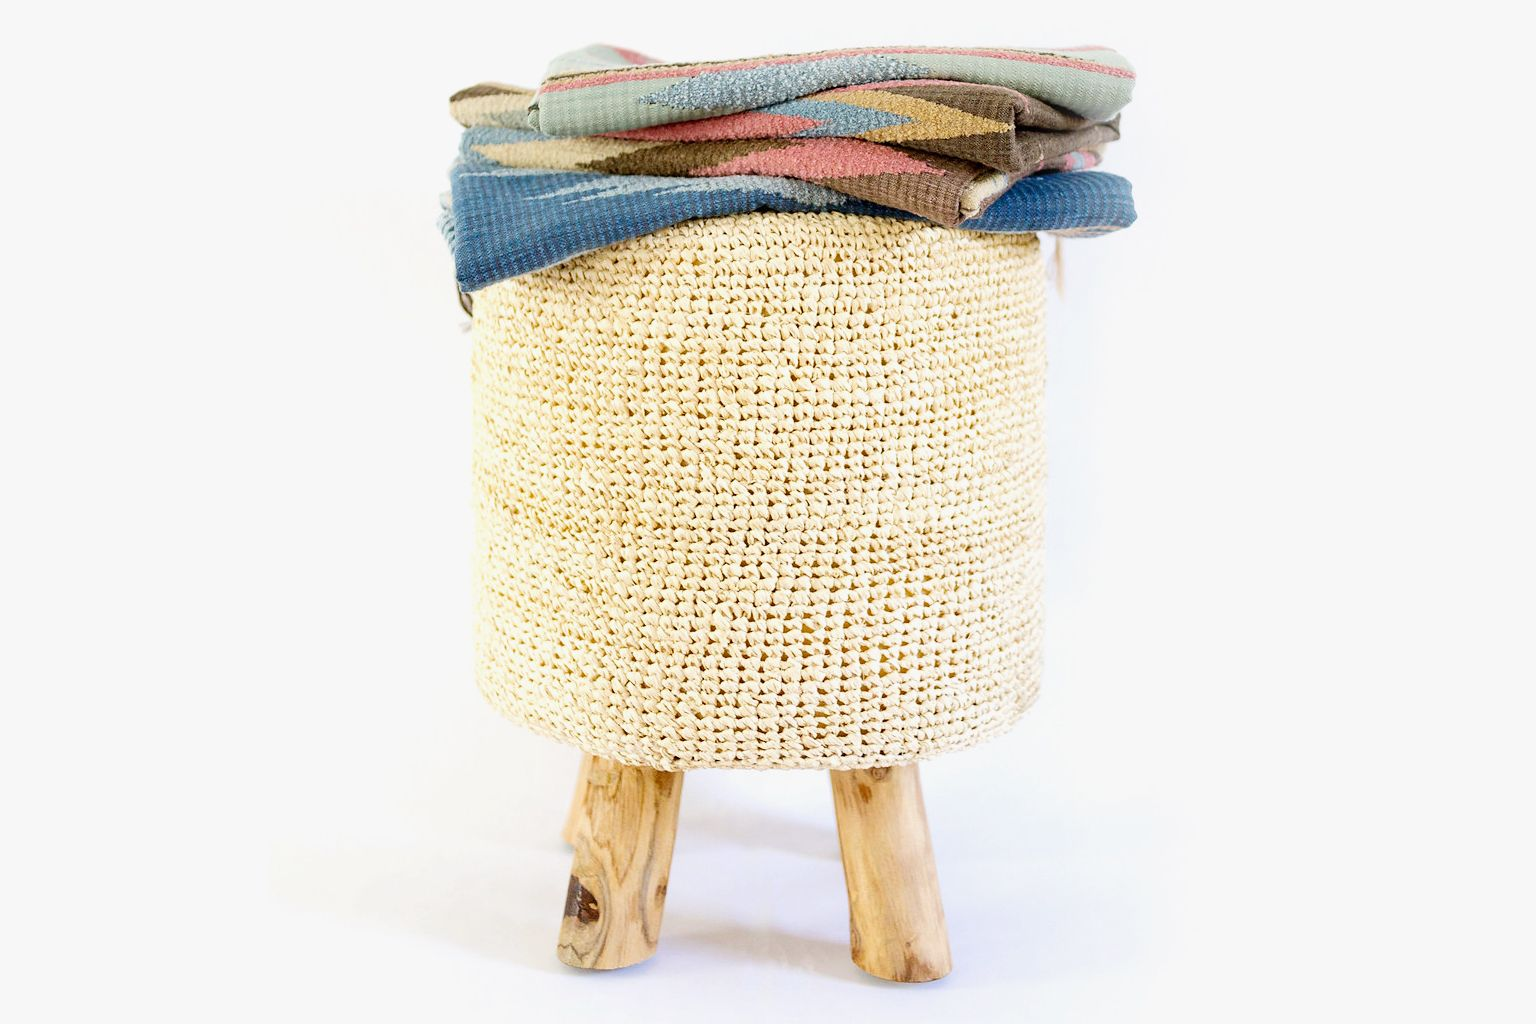 Natural Raffia Stool The Sisters at Home by Design 4 Corners